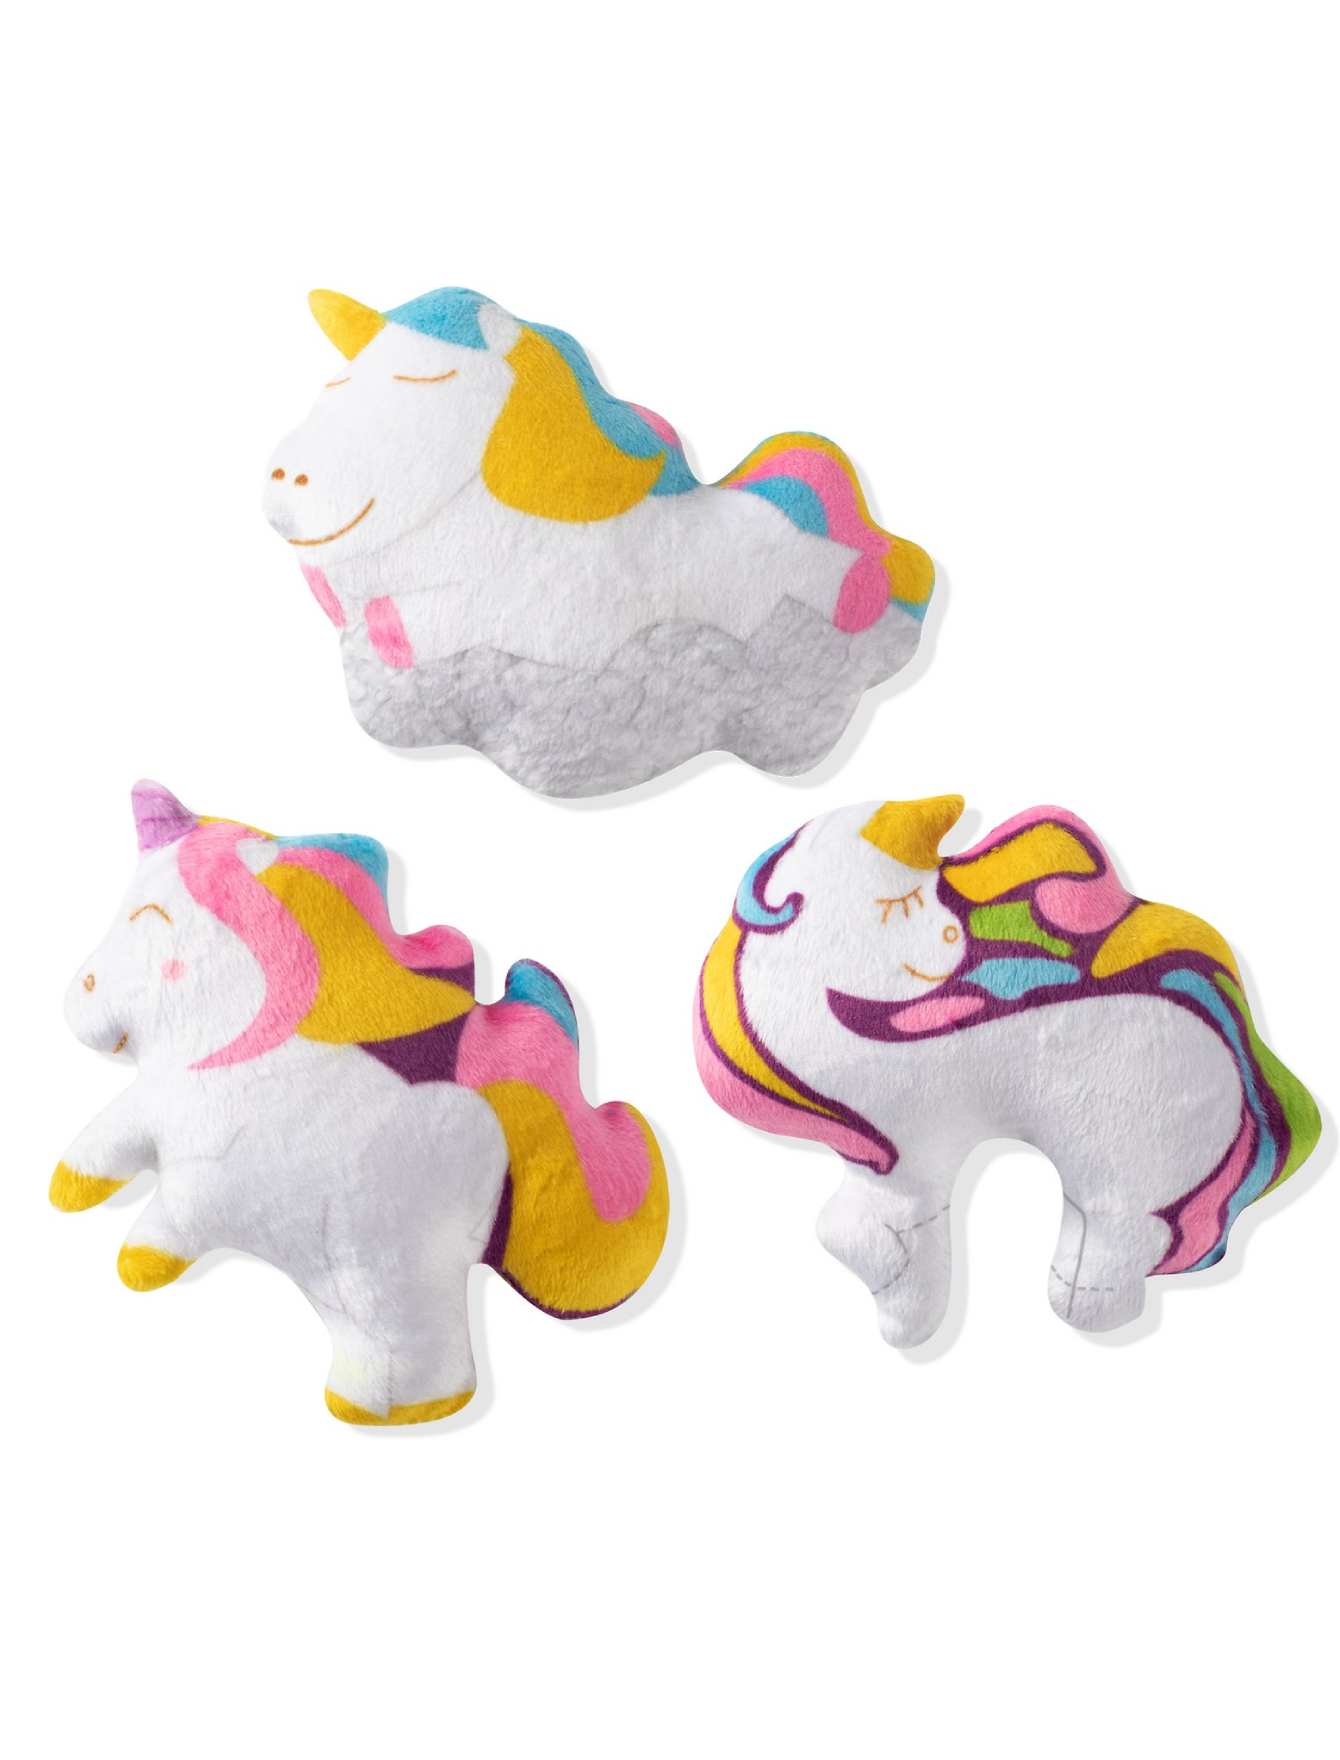 Fringe Studio Mini Unicorn, Dog Squeaky Plush Toy | Perromart Online Pet Store Singapore